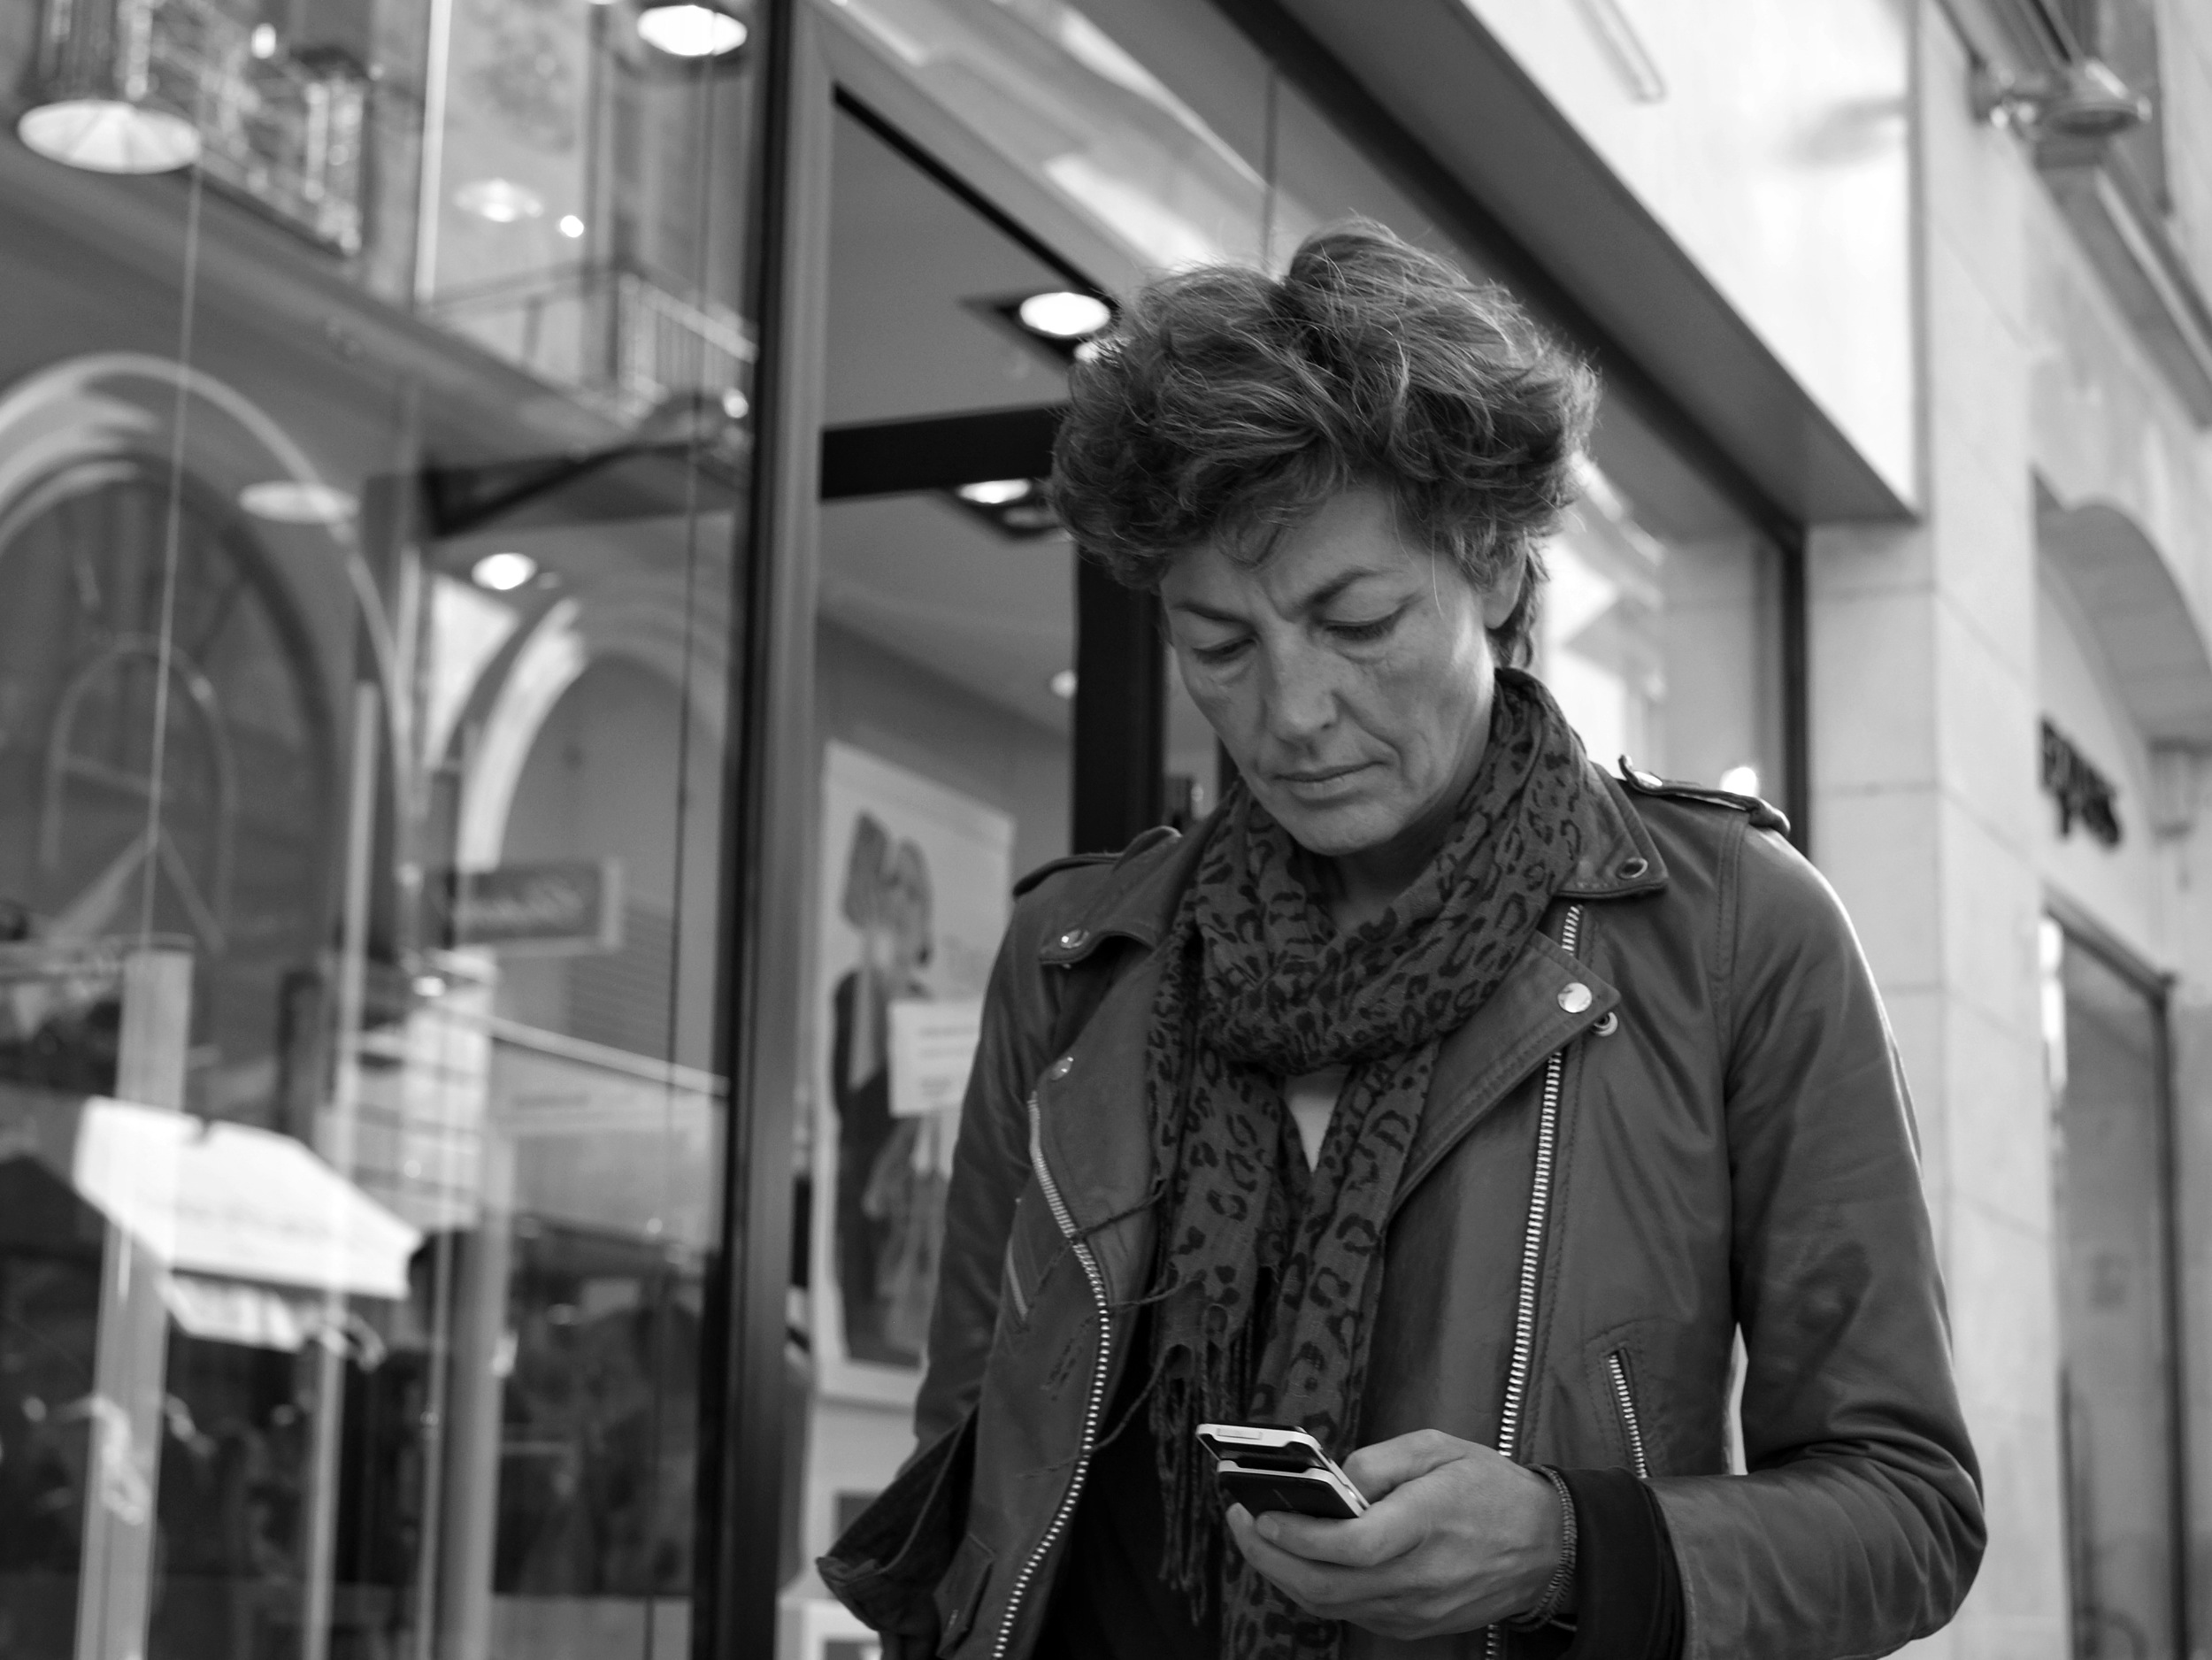 Woman walking and on phone in Nantes - Fuji X-Pro1